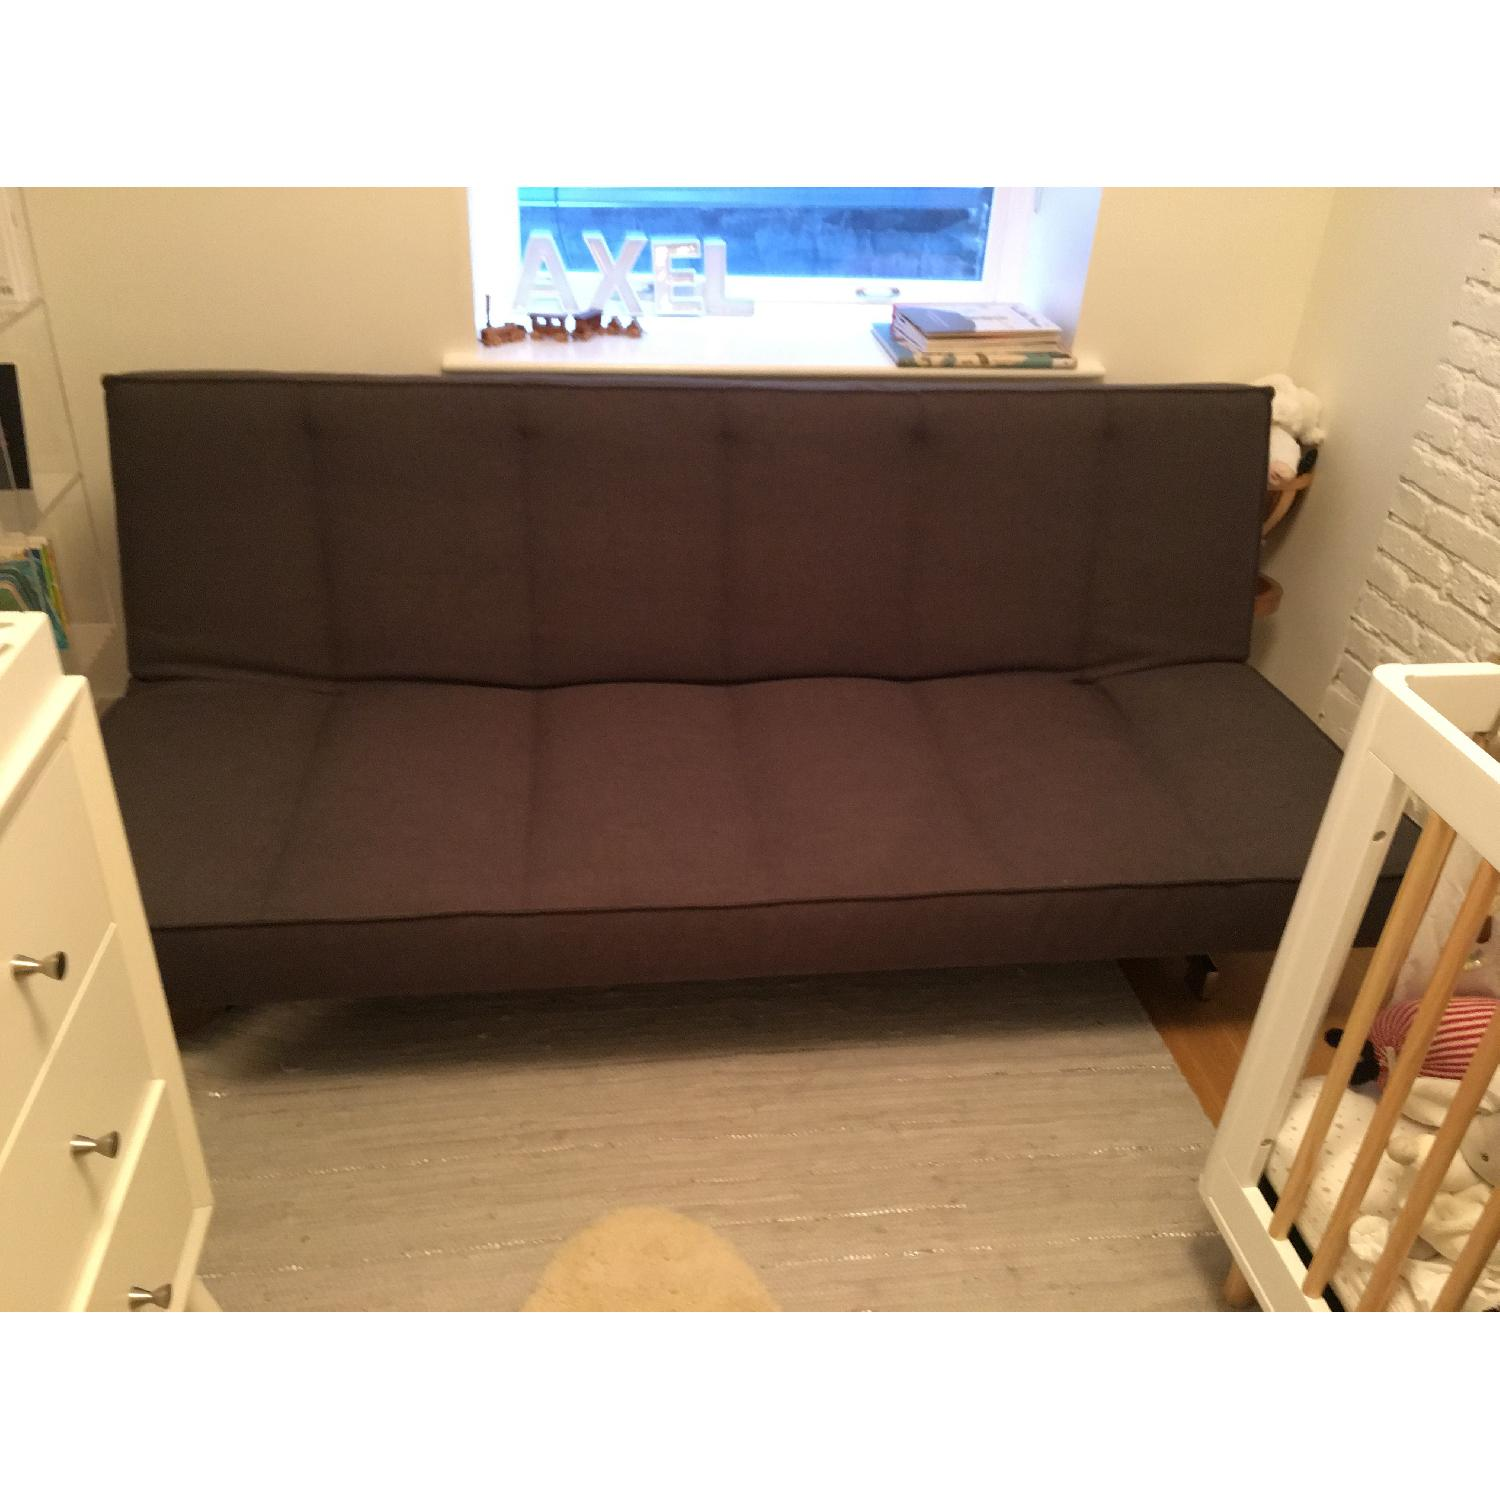 CB2 Flex Gravel Sleeper Sofa - image-8